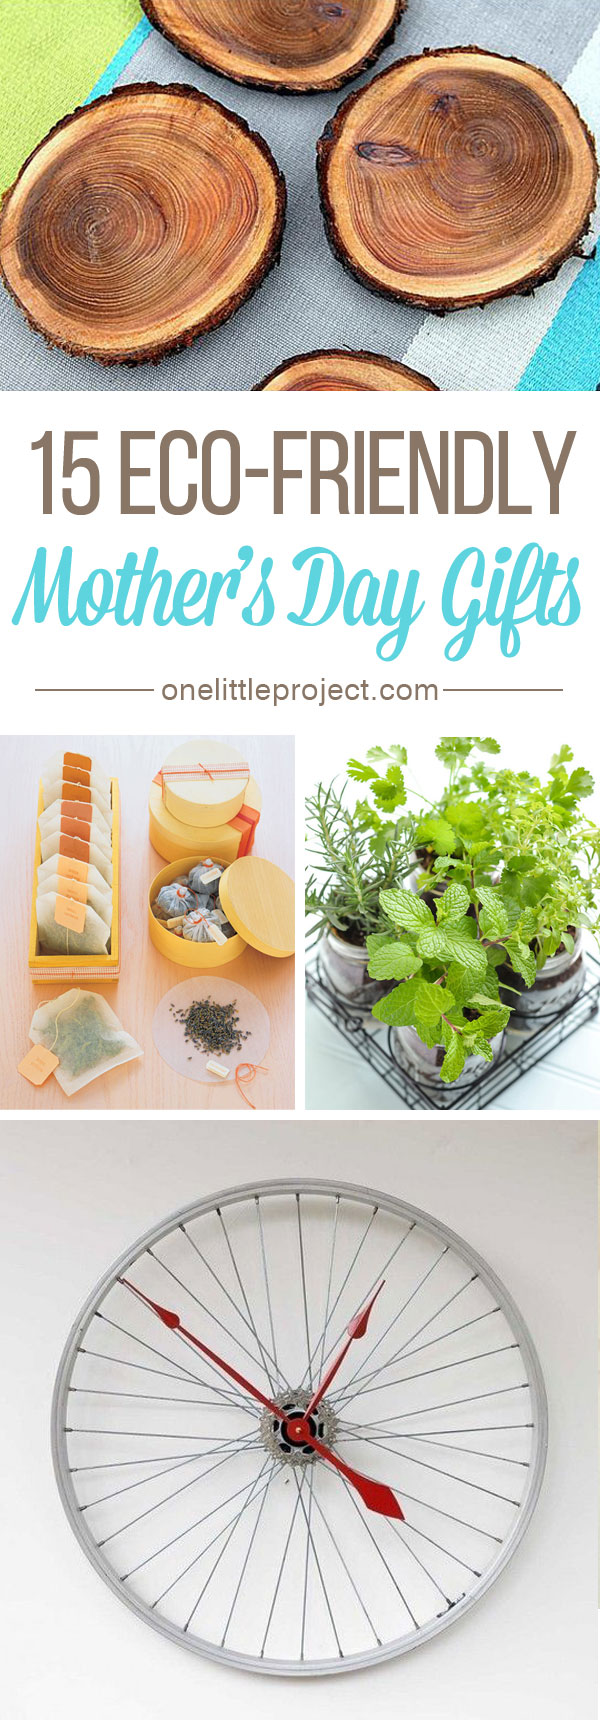 15 Eco-Friendly Mother's Day Gifts - There are lots of beautiful options that are kind to mother nature!